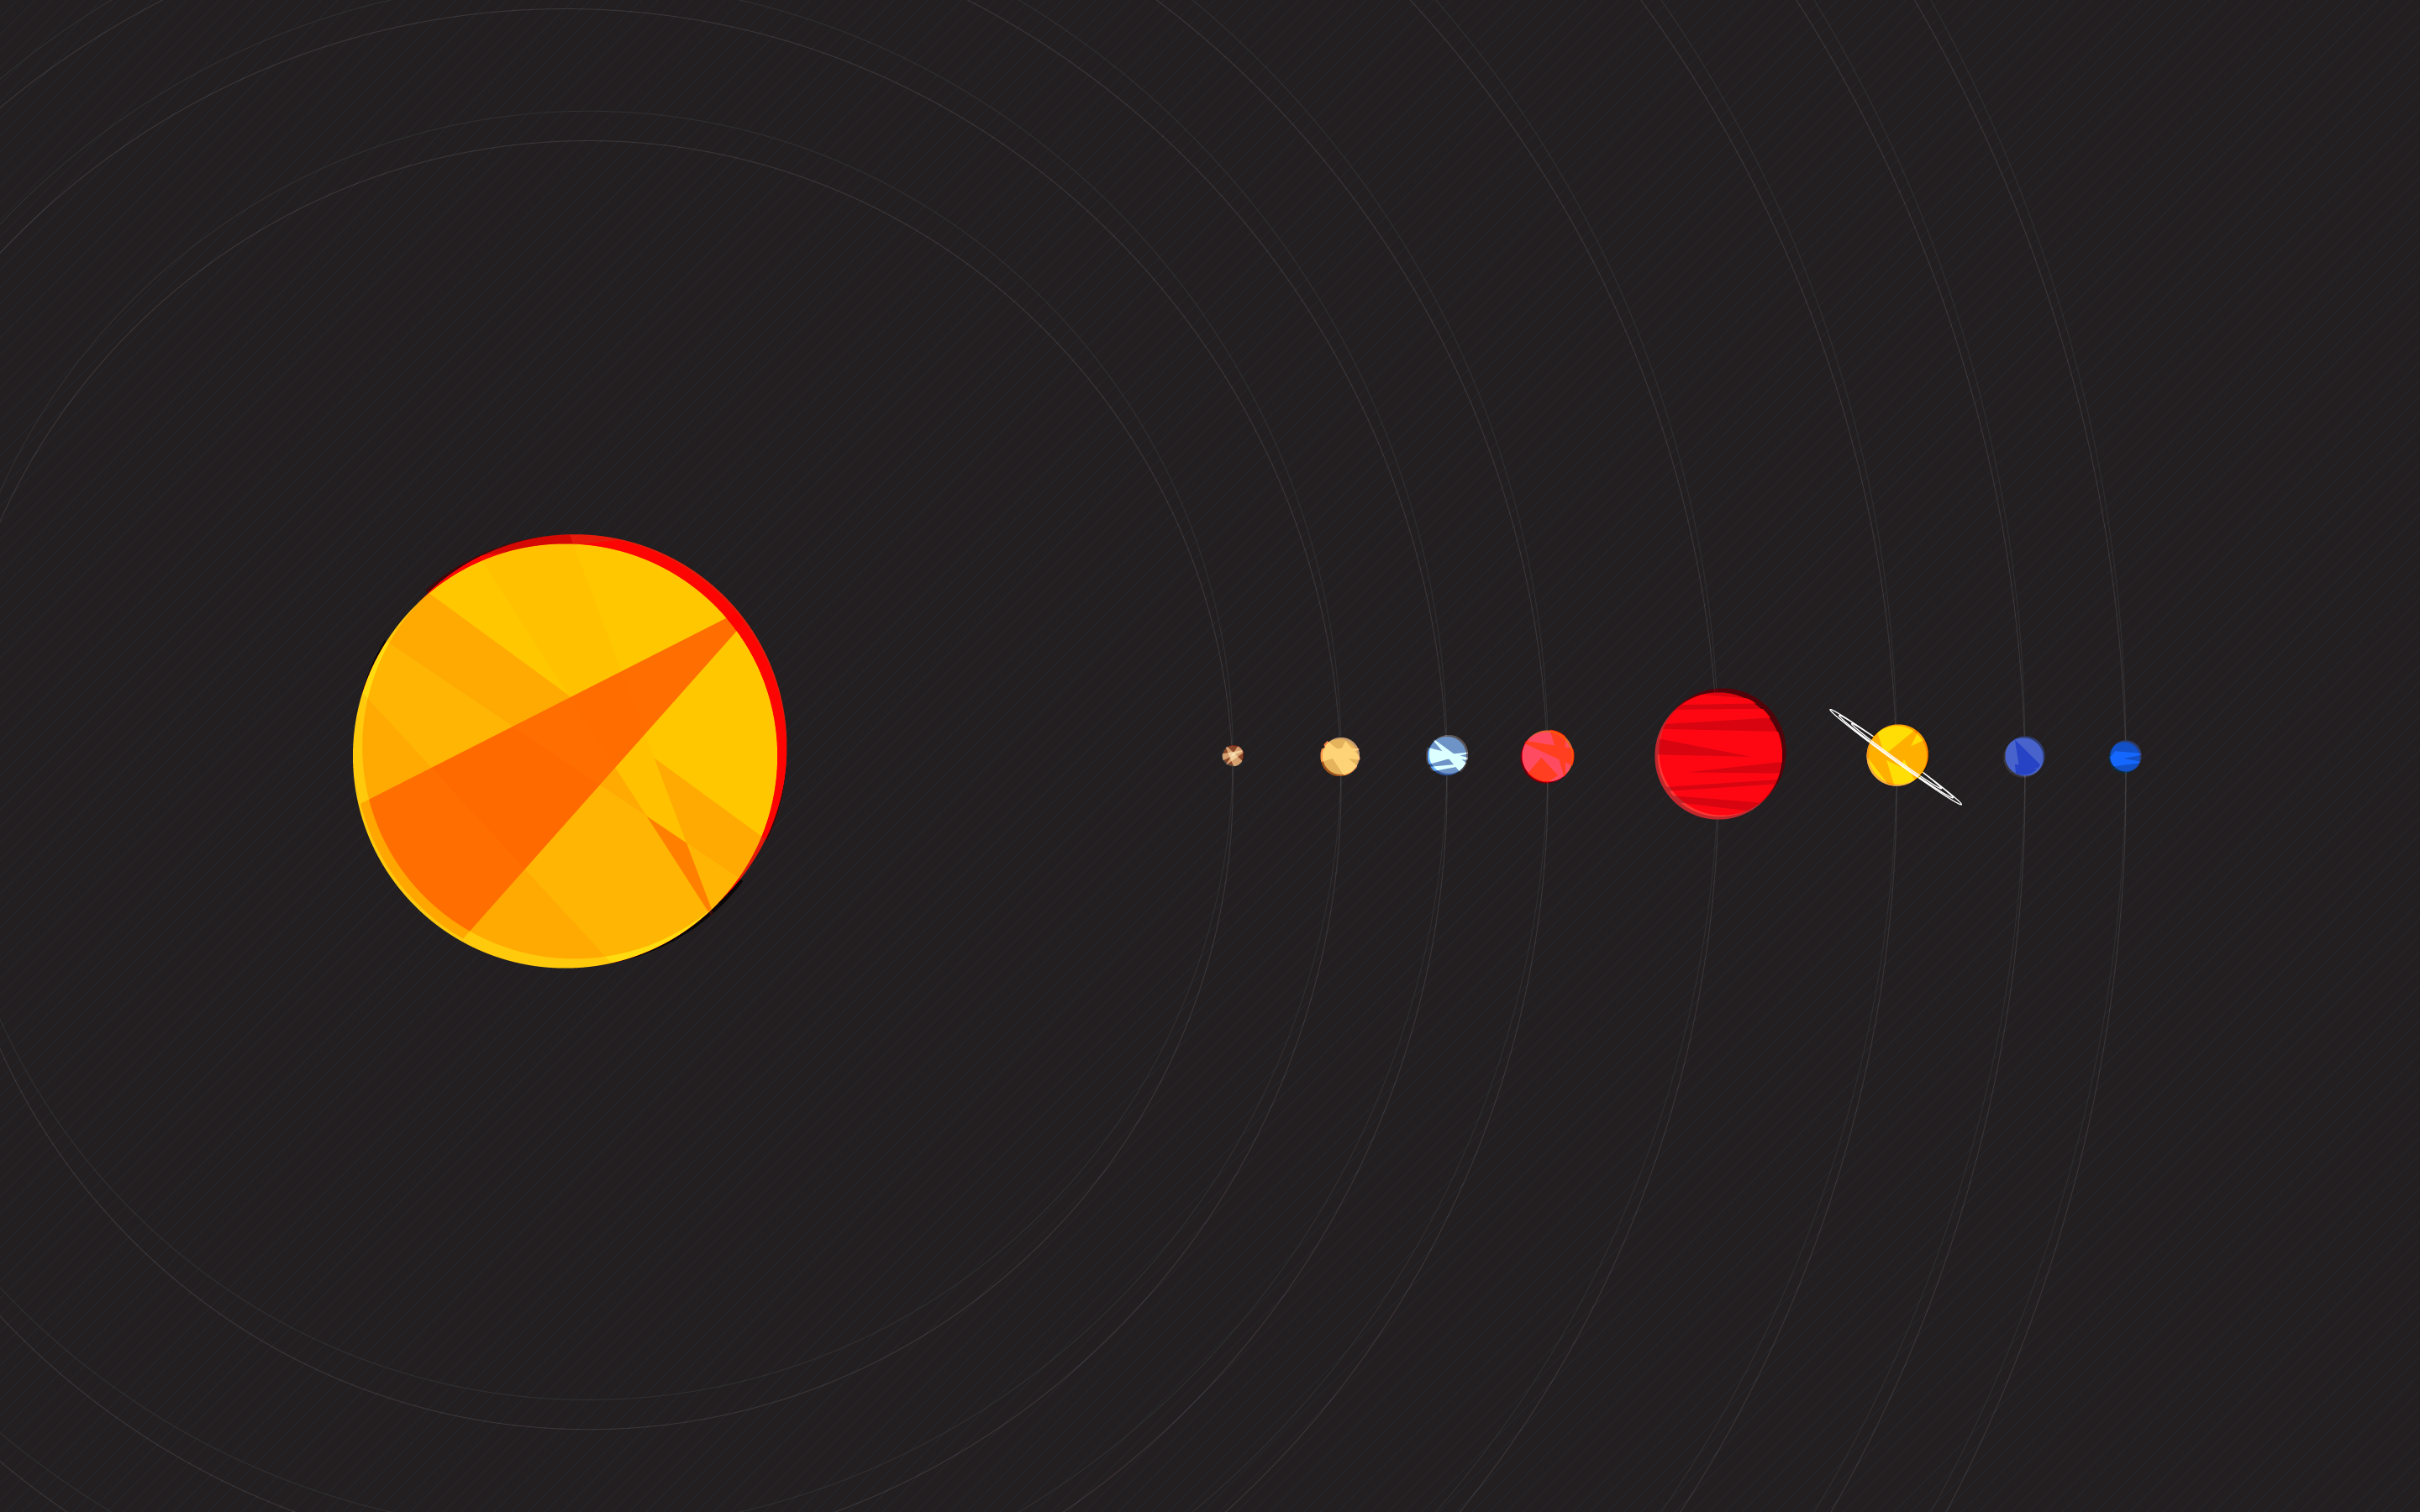 best solar system wallpaper - photo #28